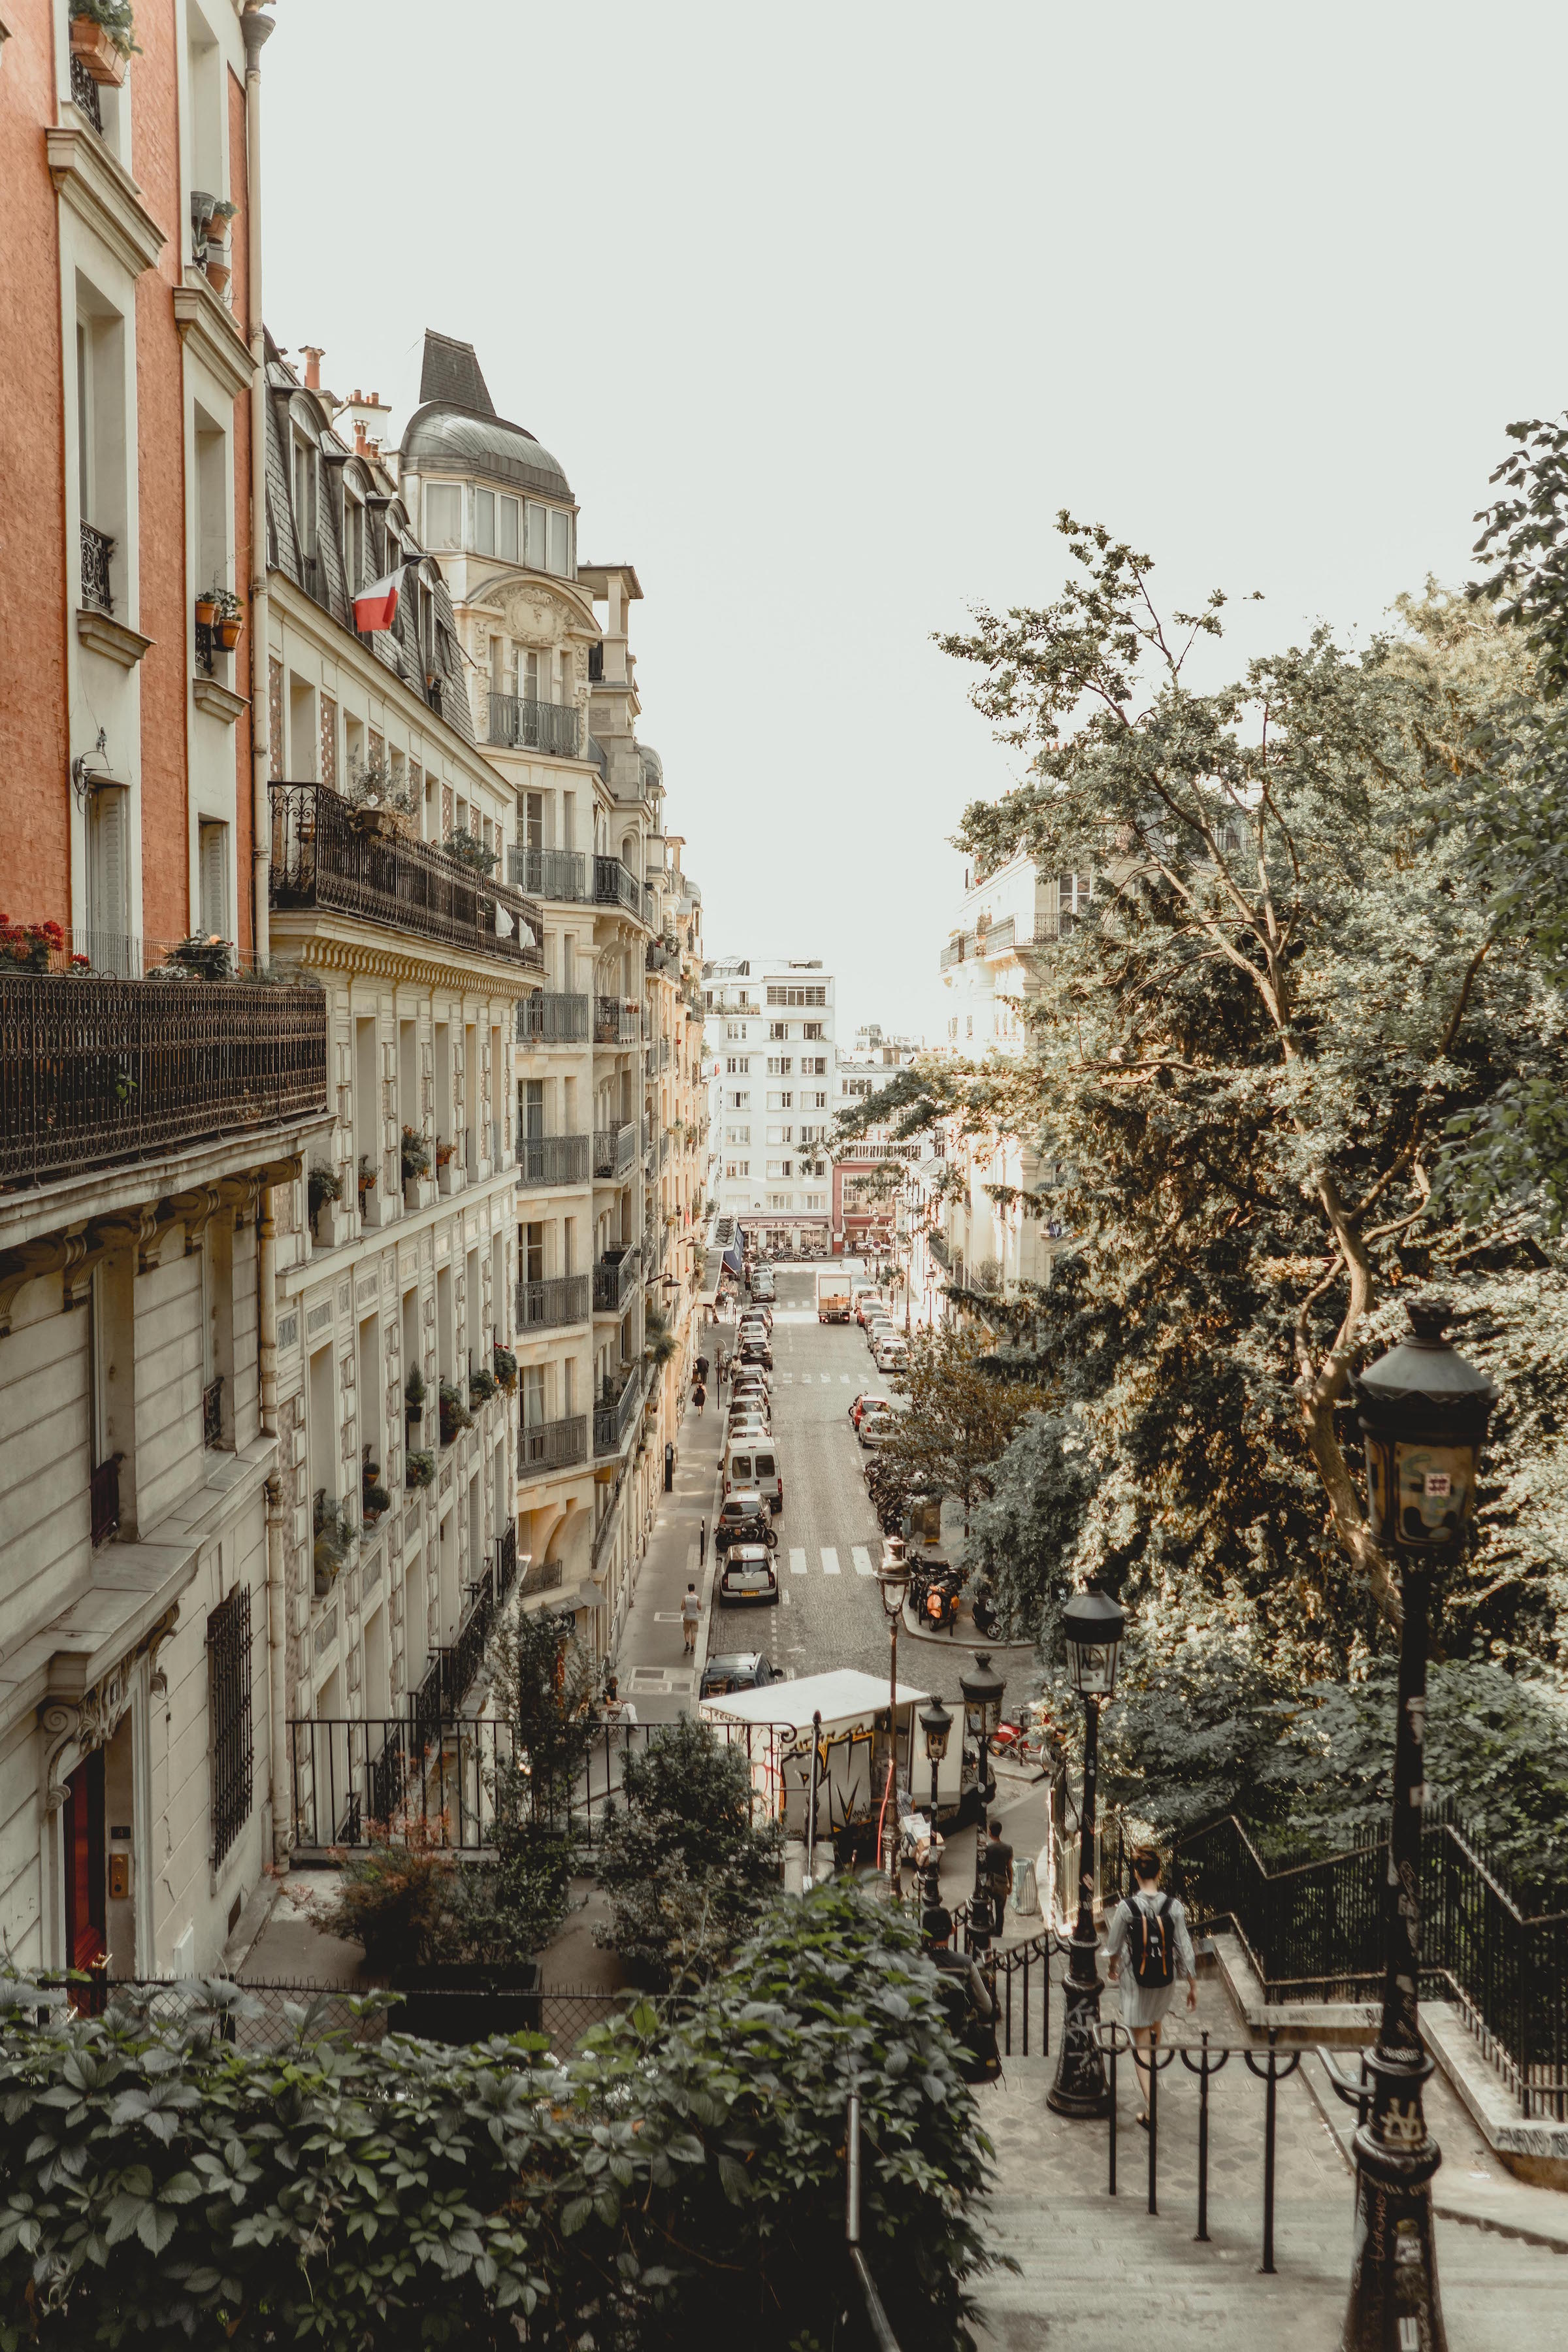 The view on our walk up to Sacre Coeur